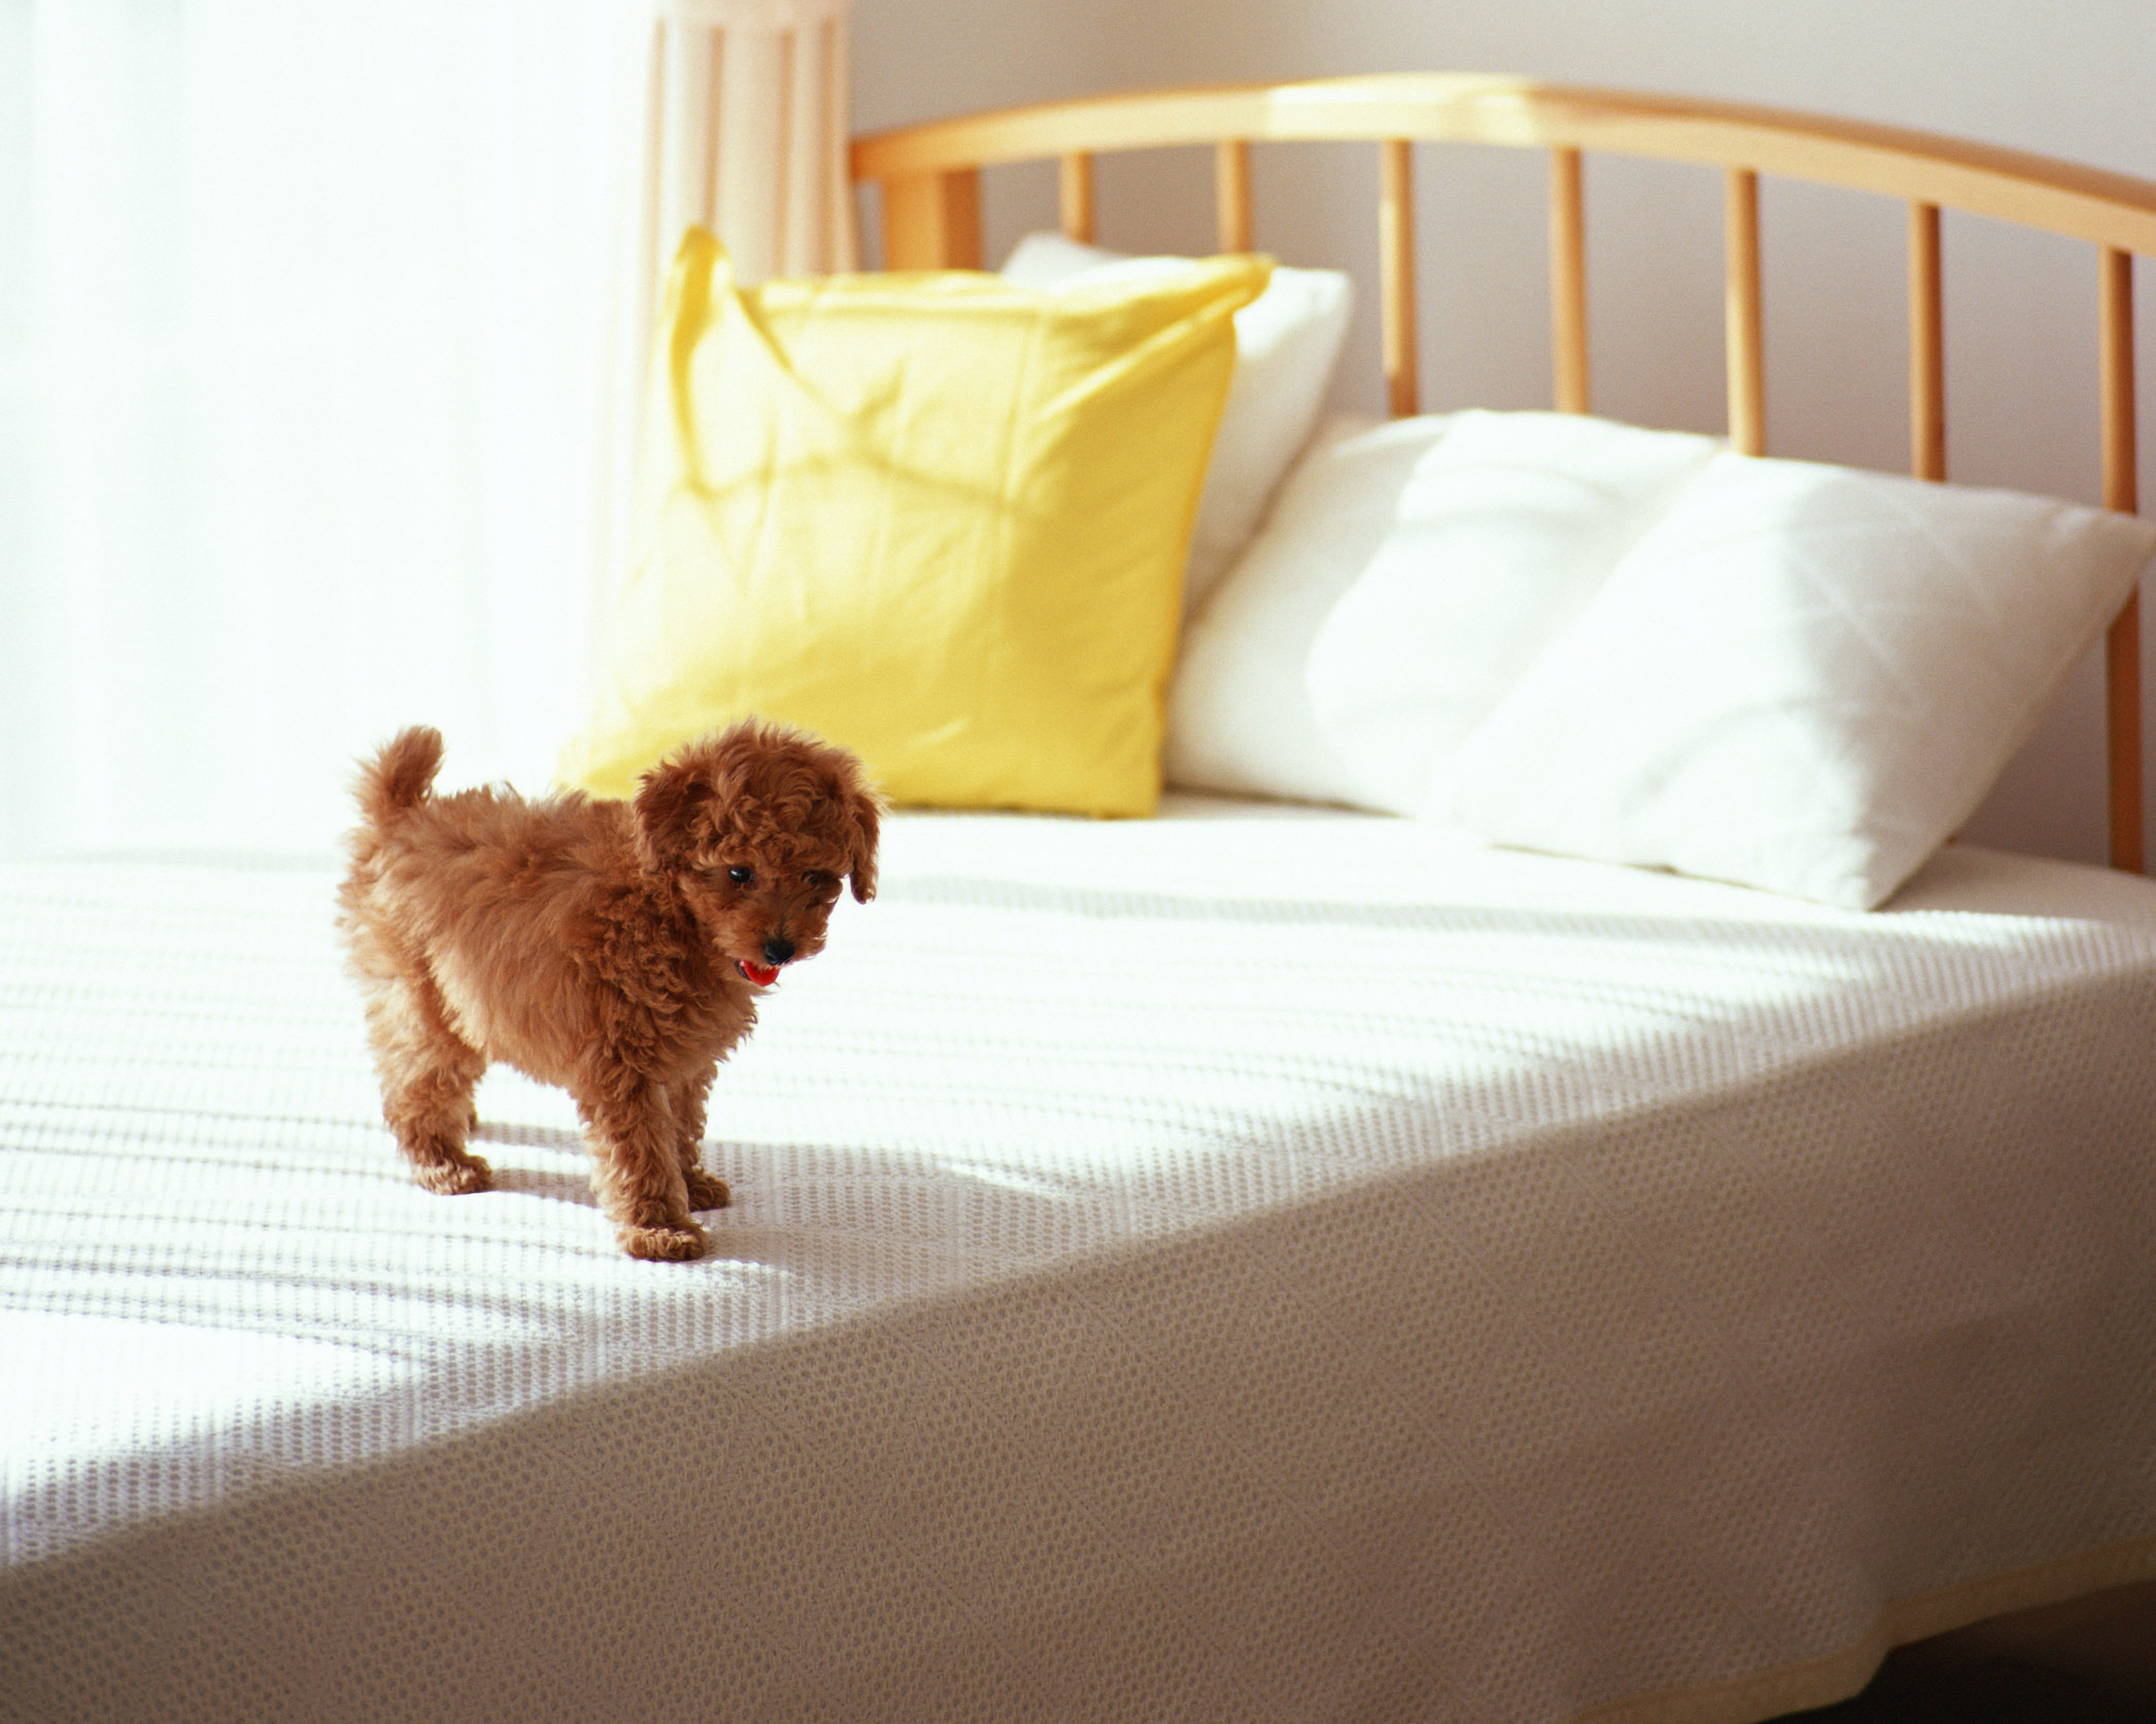 145775 download wallpaper Animals, Puppy, Curls, Bed, Morning screensavers and pictures for free